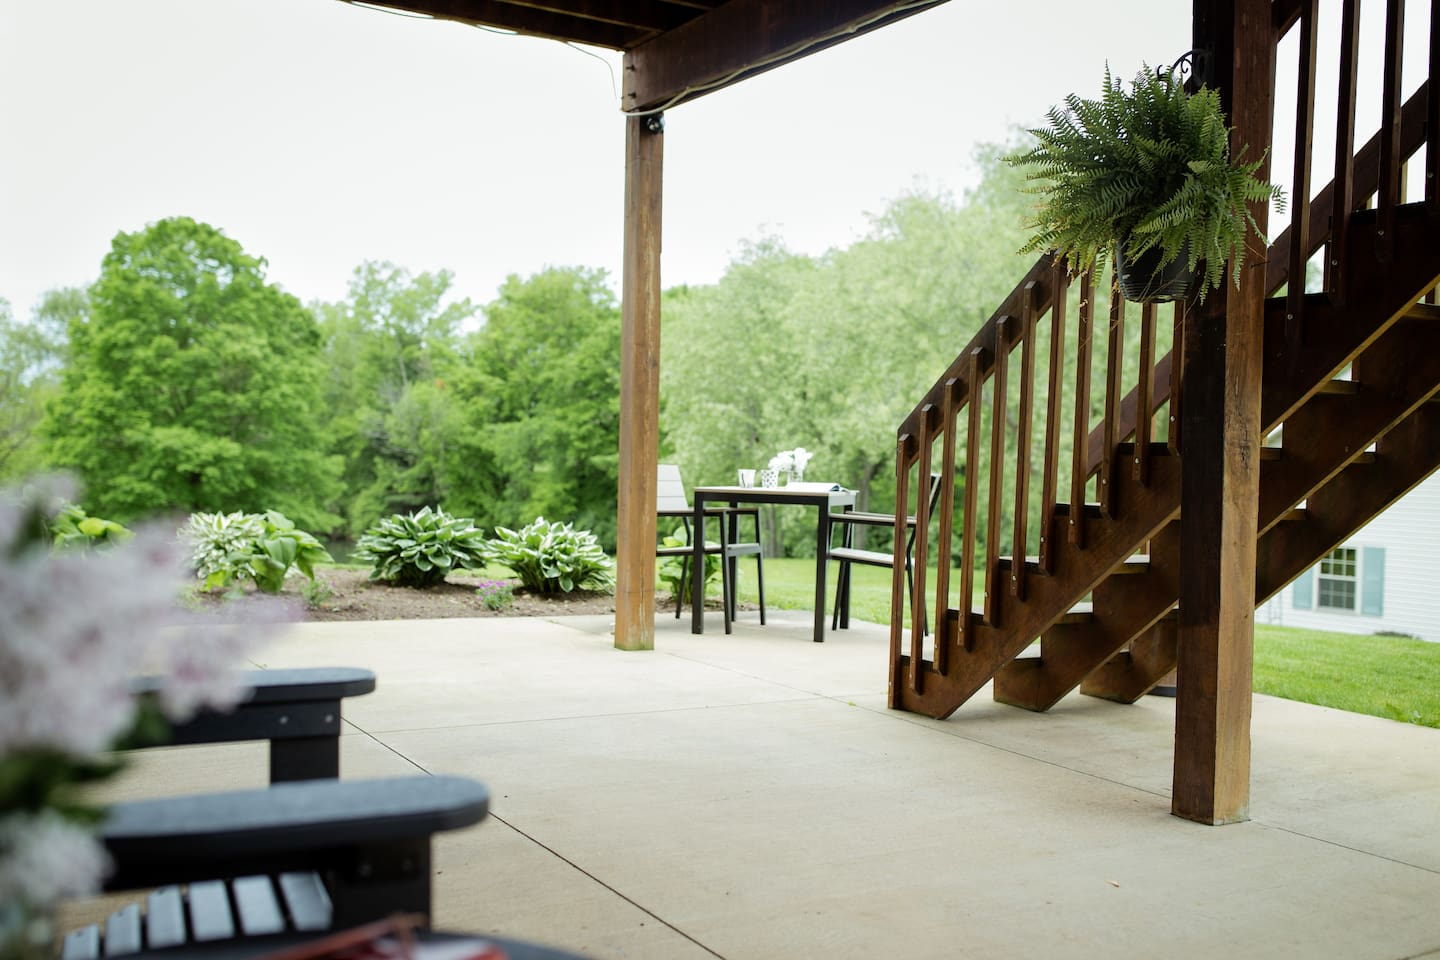 The porch is available for your enjoyment.